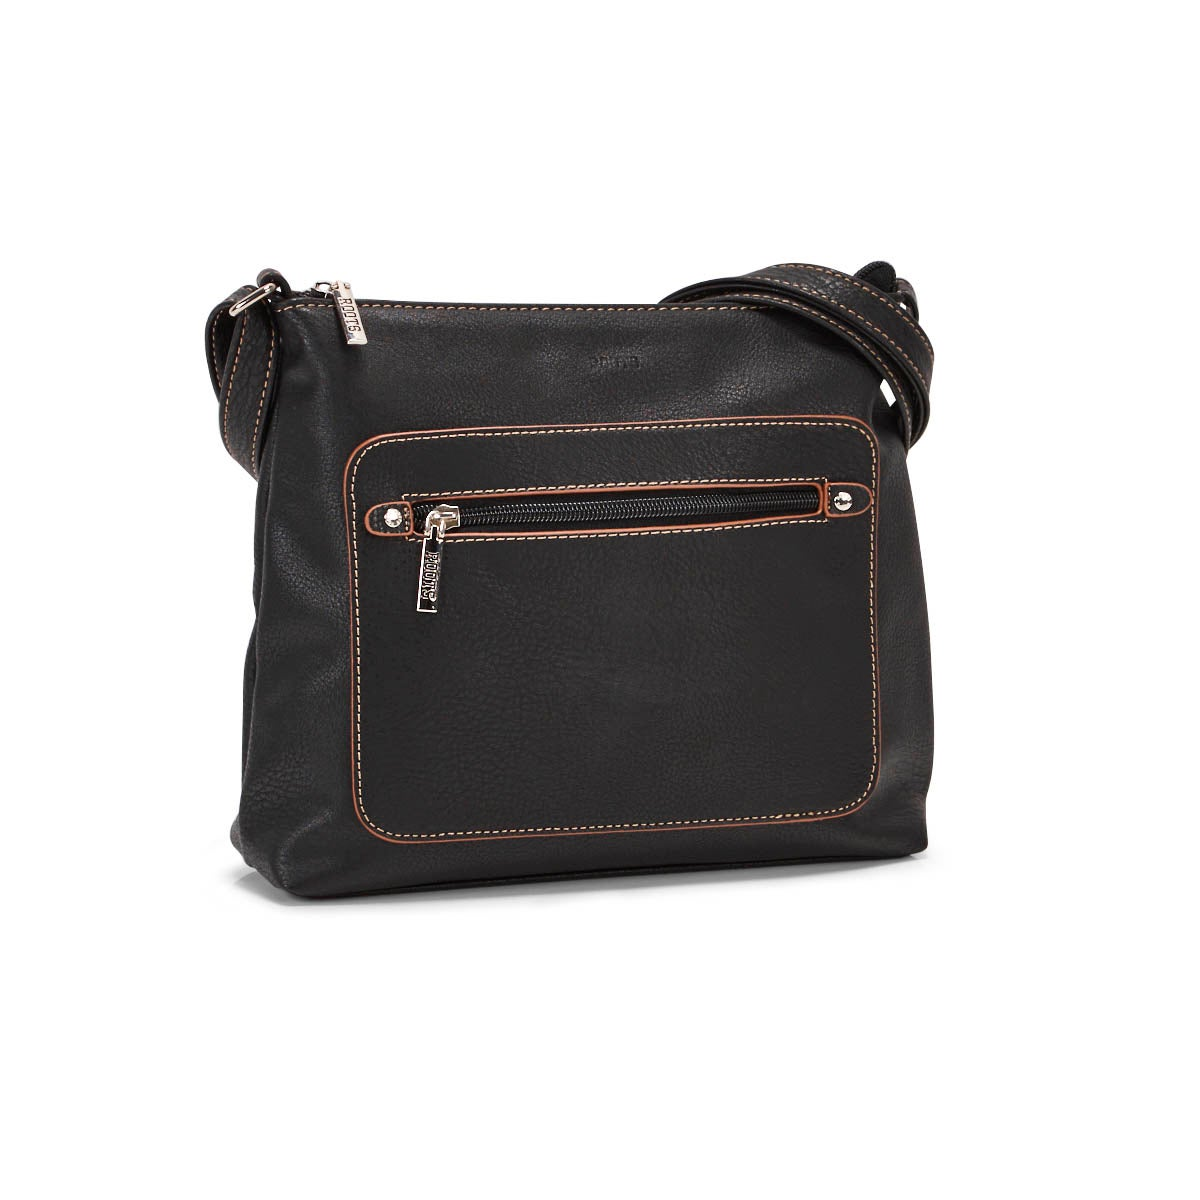 Lds Roots73 black painted edge crossbody